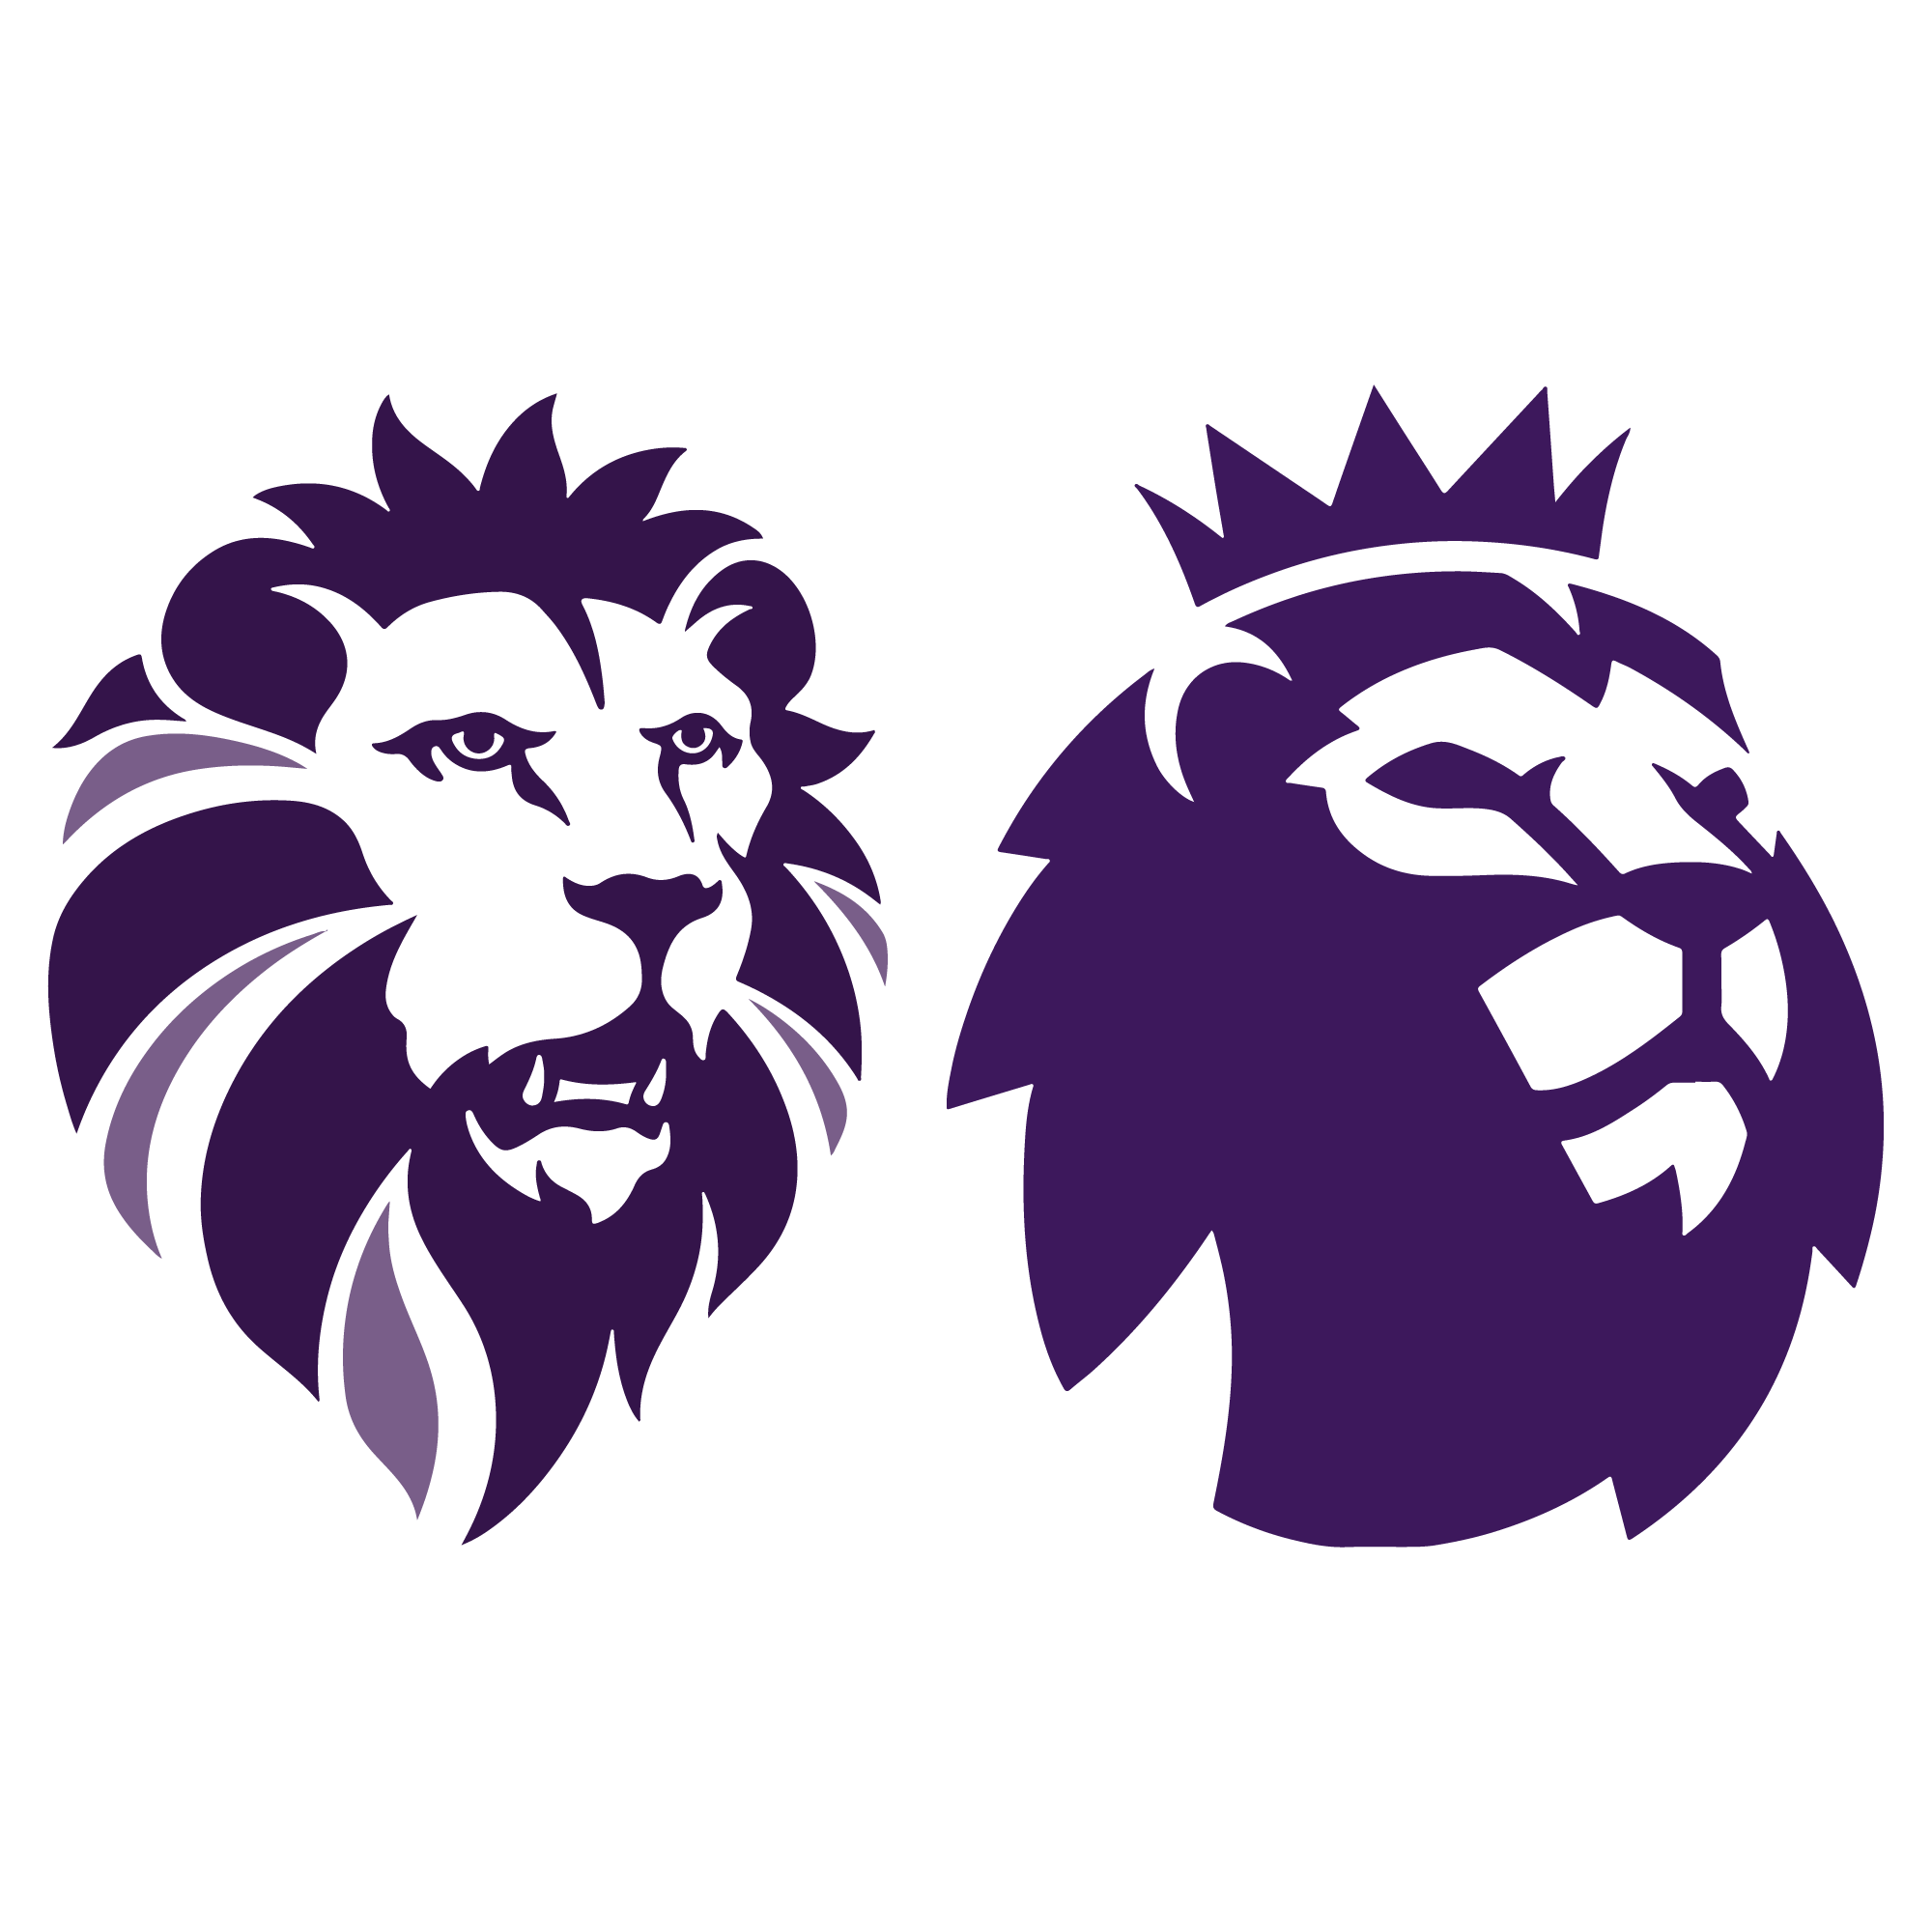 Collection of Premier league clipart.